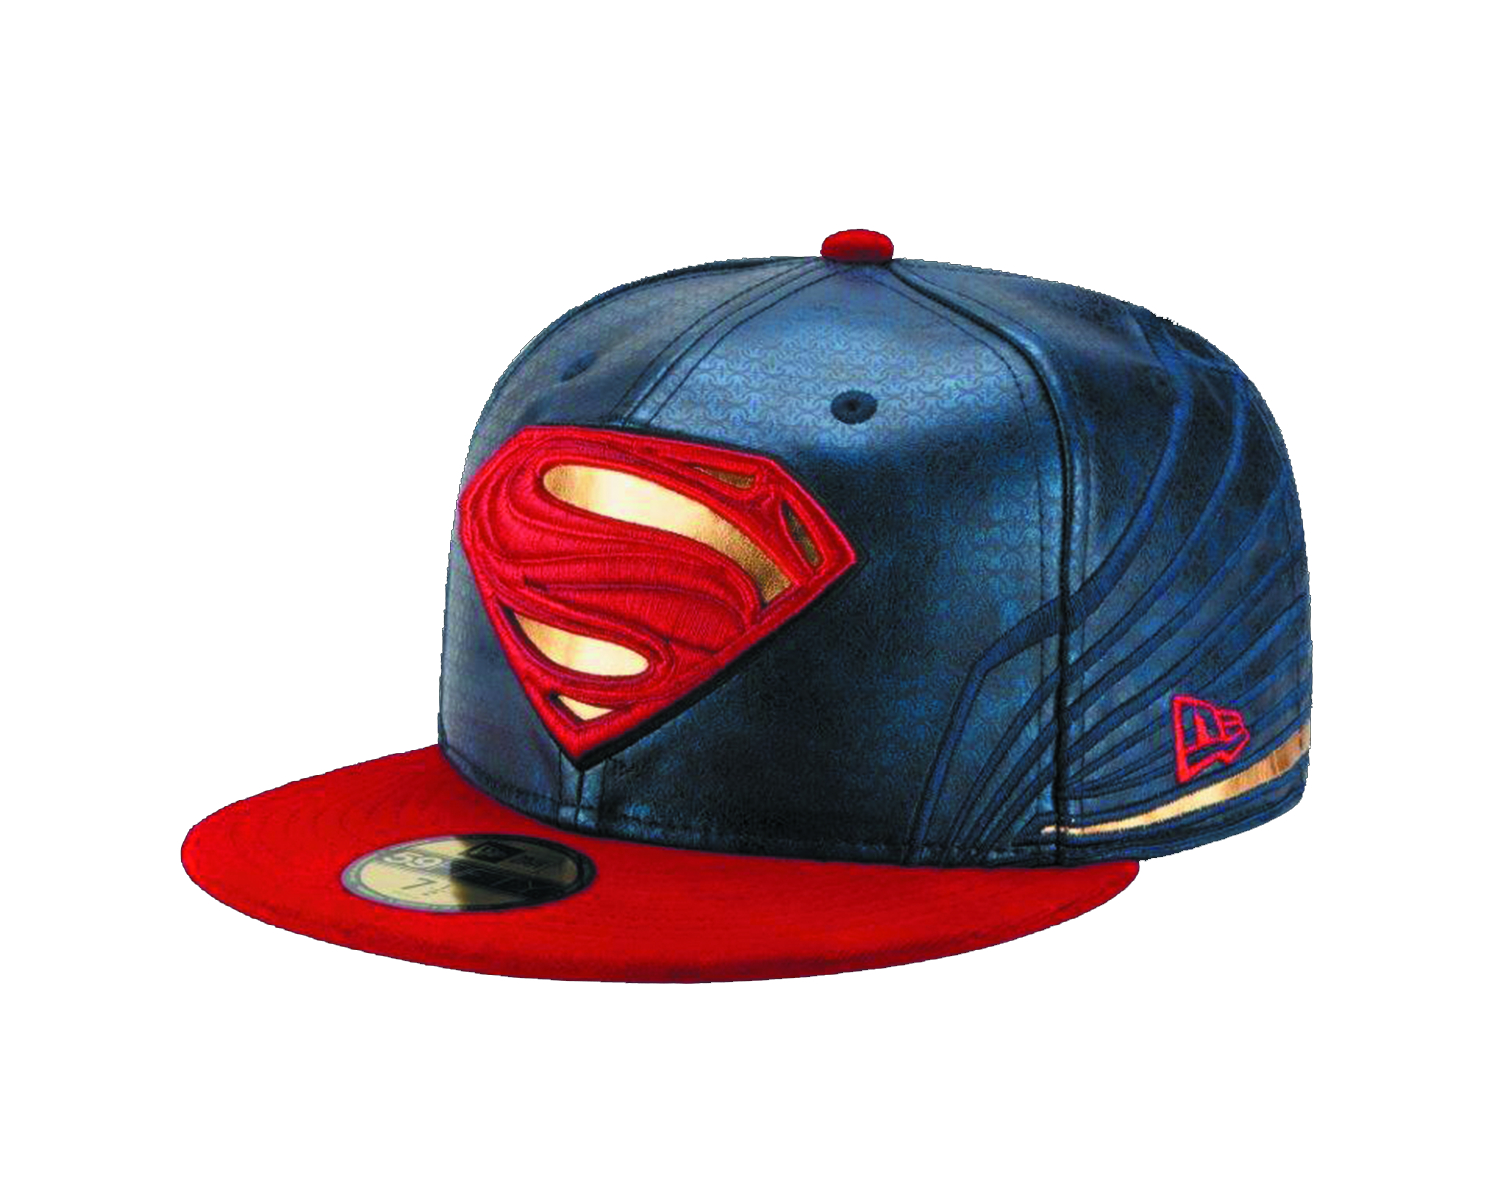 BATMAN V SUPERMAN ARMOR SUPERMAN FITTED CAP SZ 7 3/8